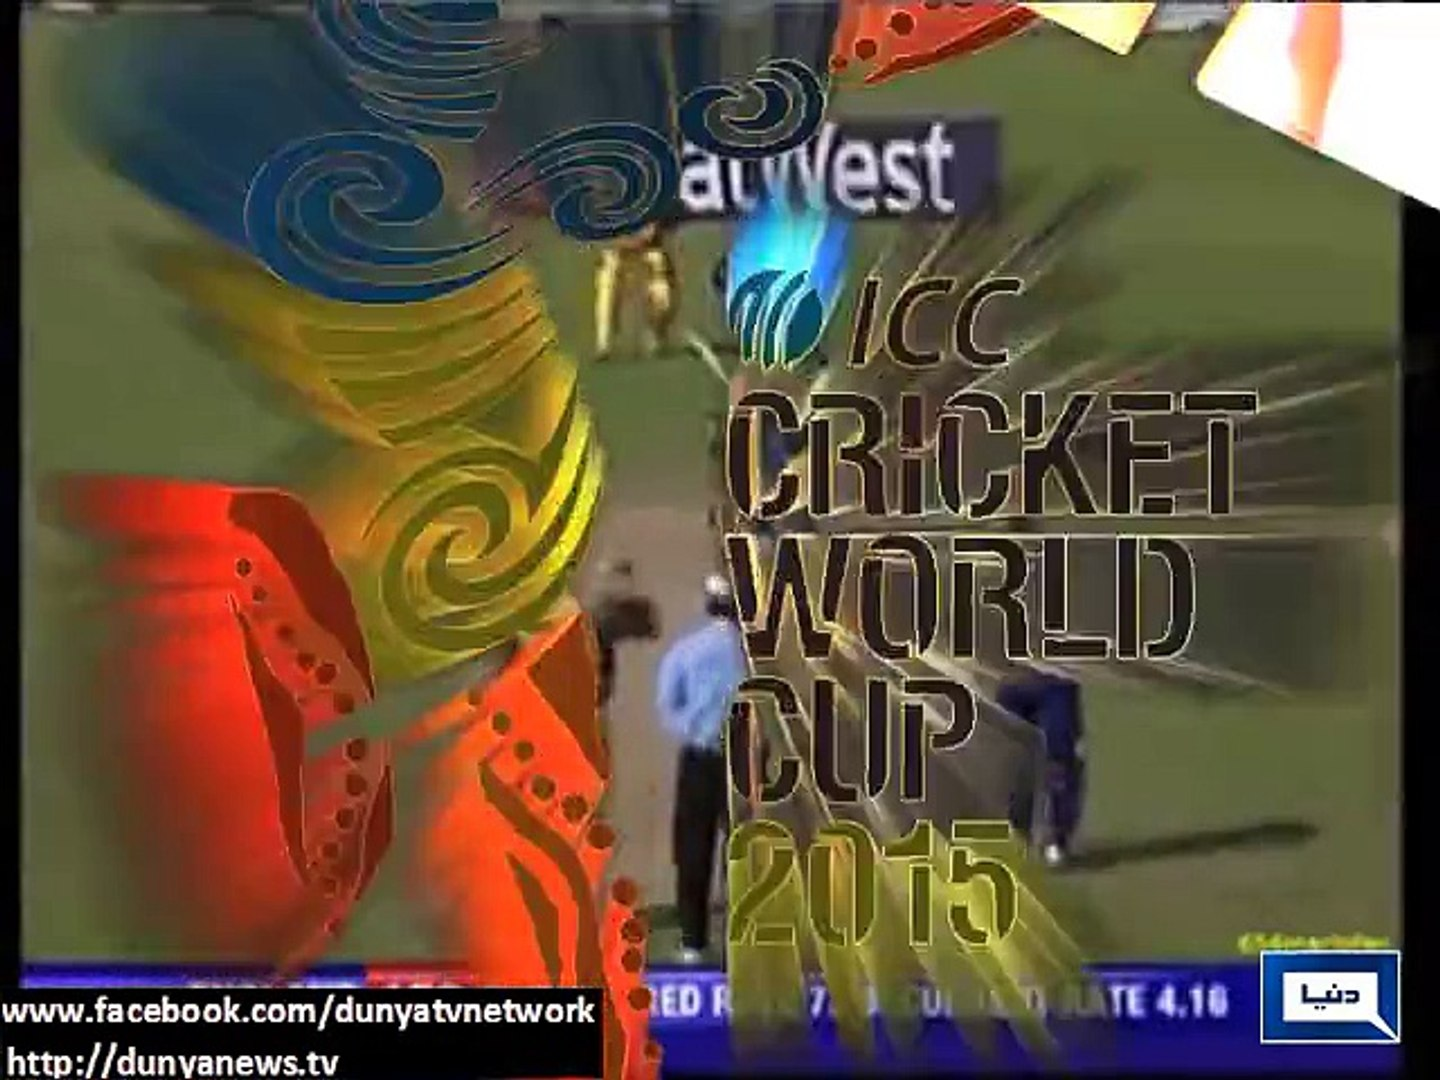 Dunya news- World Cup Round Up: Brief news related to World Cup